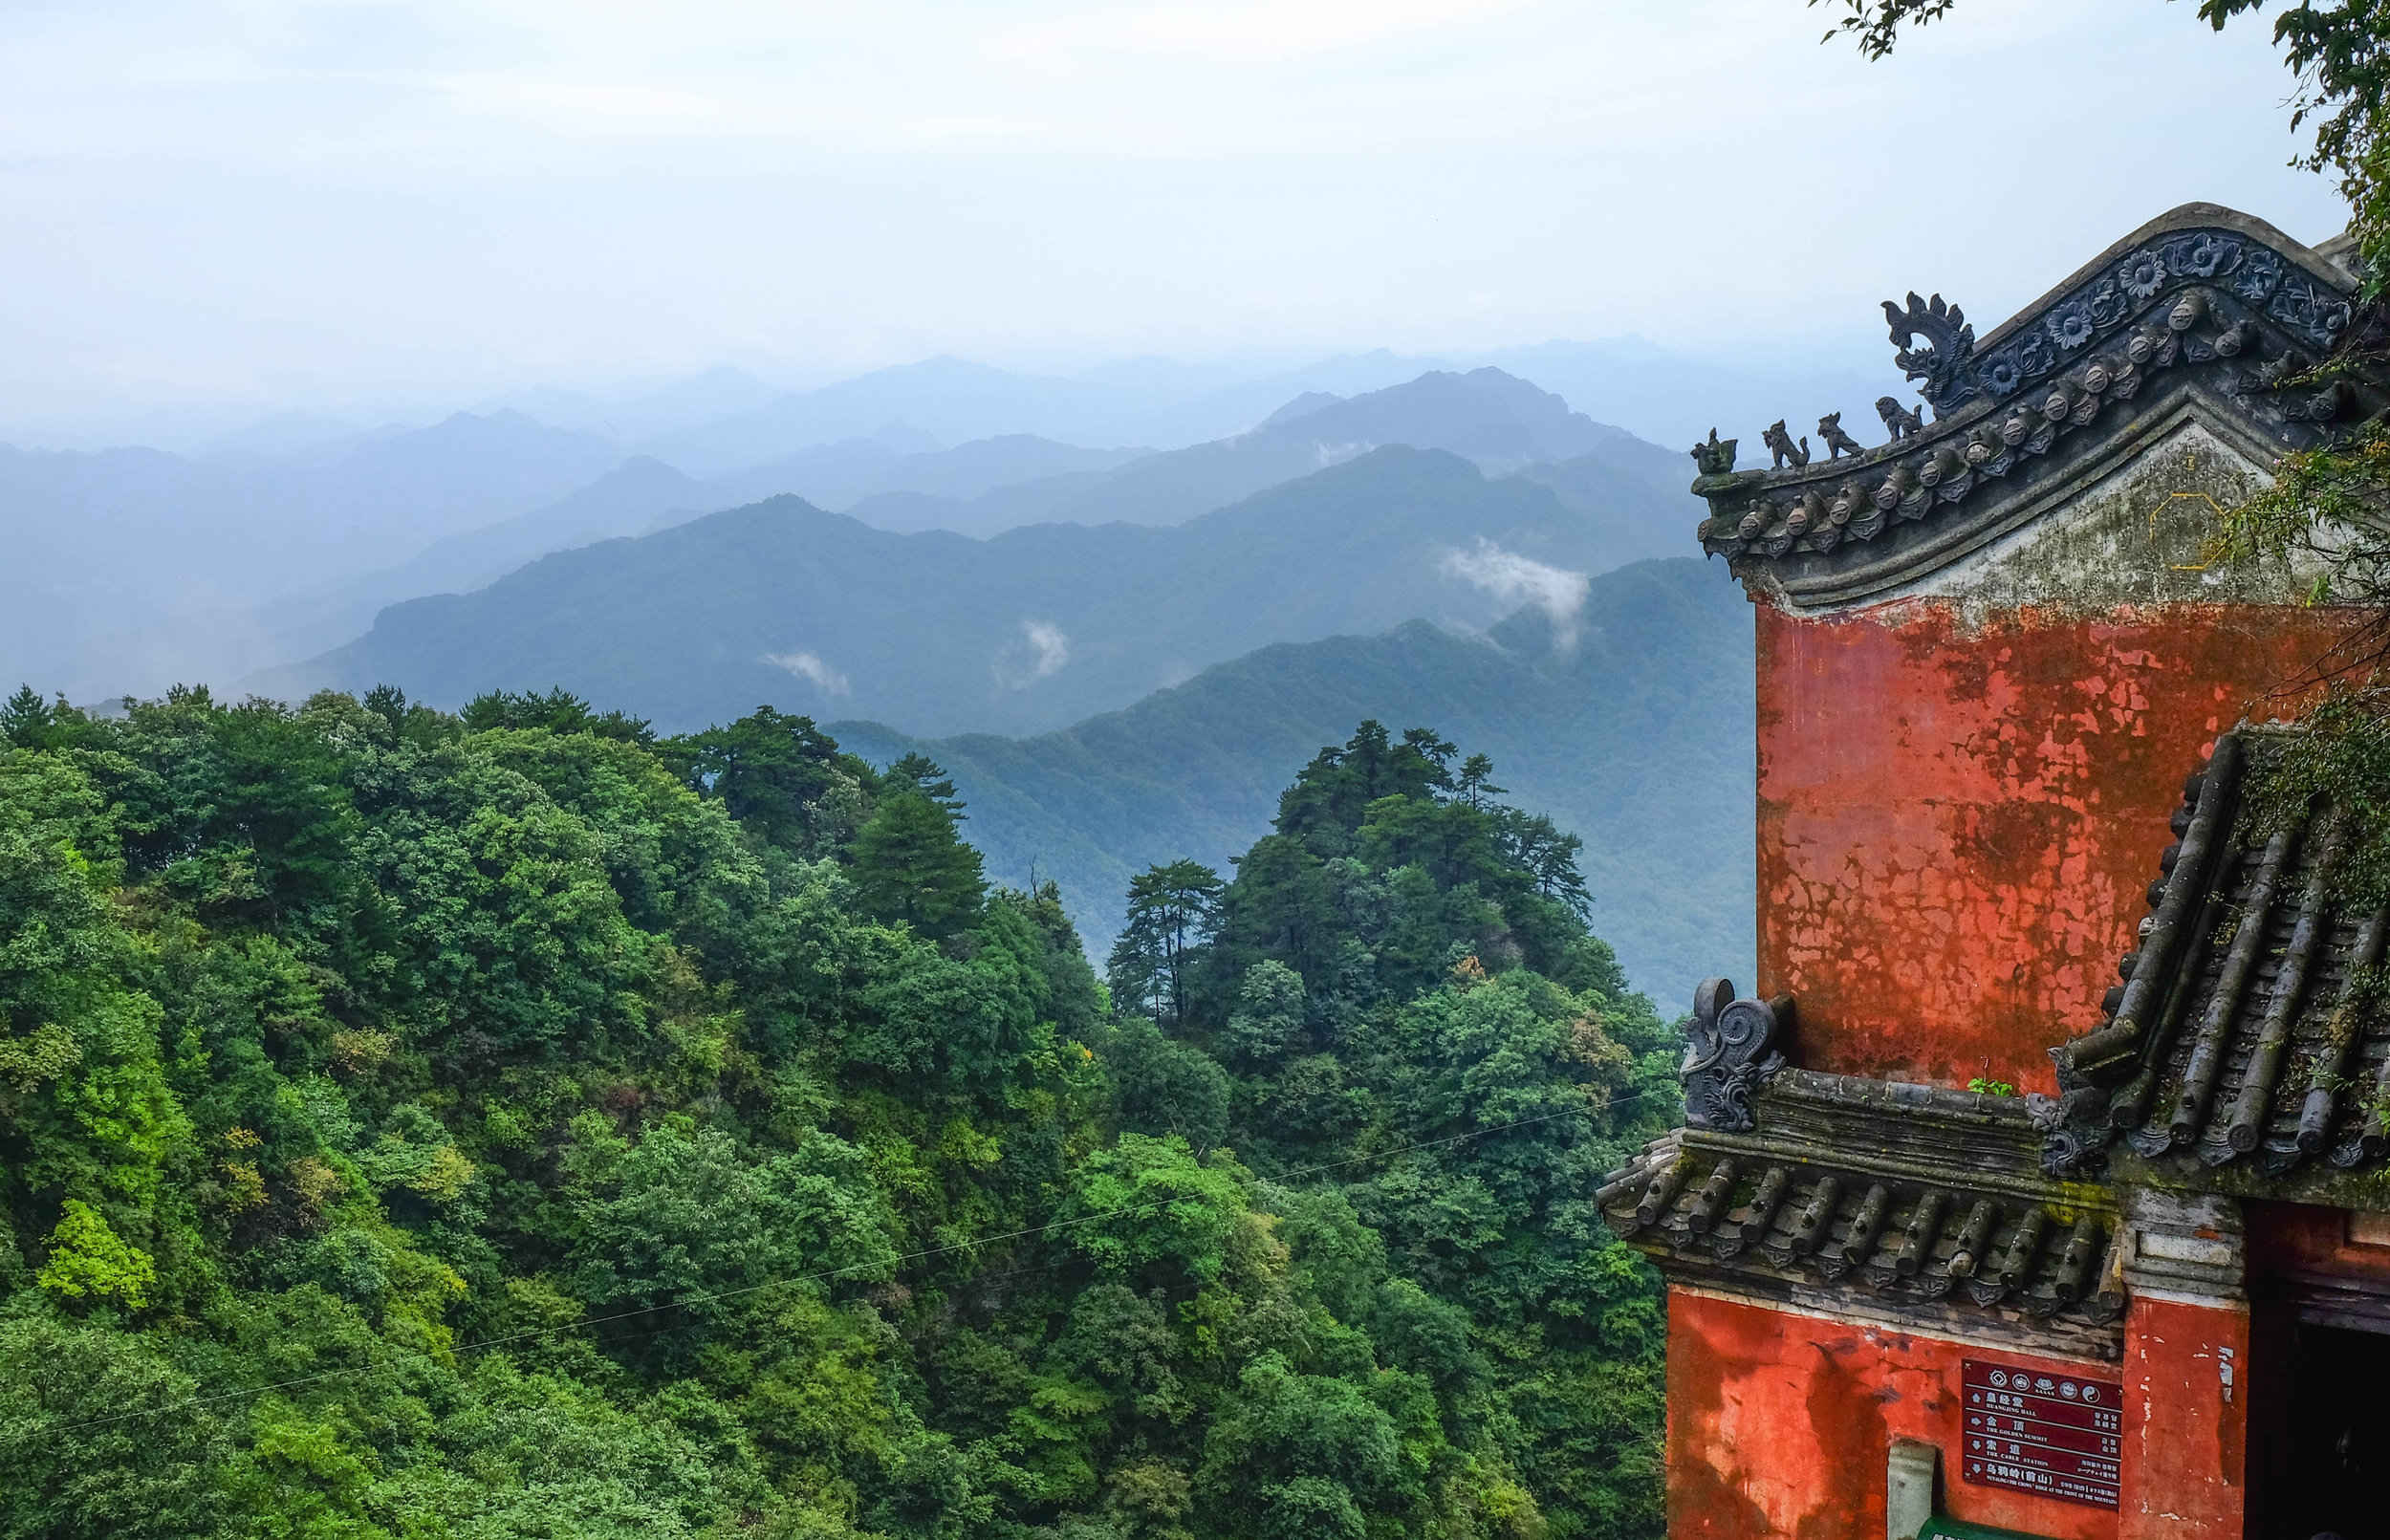 Daoist monastery at the top of Wudang mountain, Hubei, China